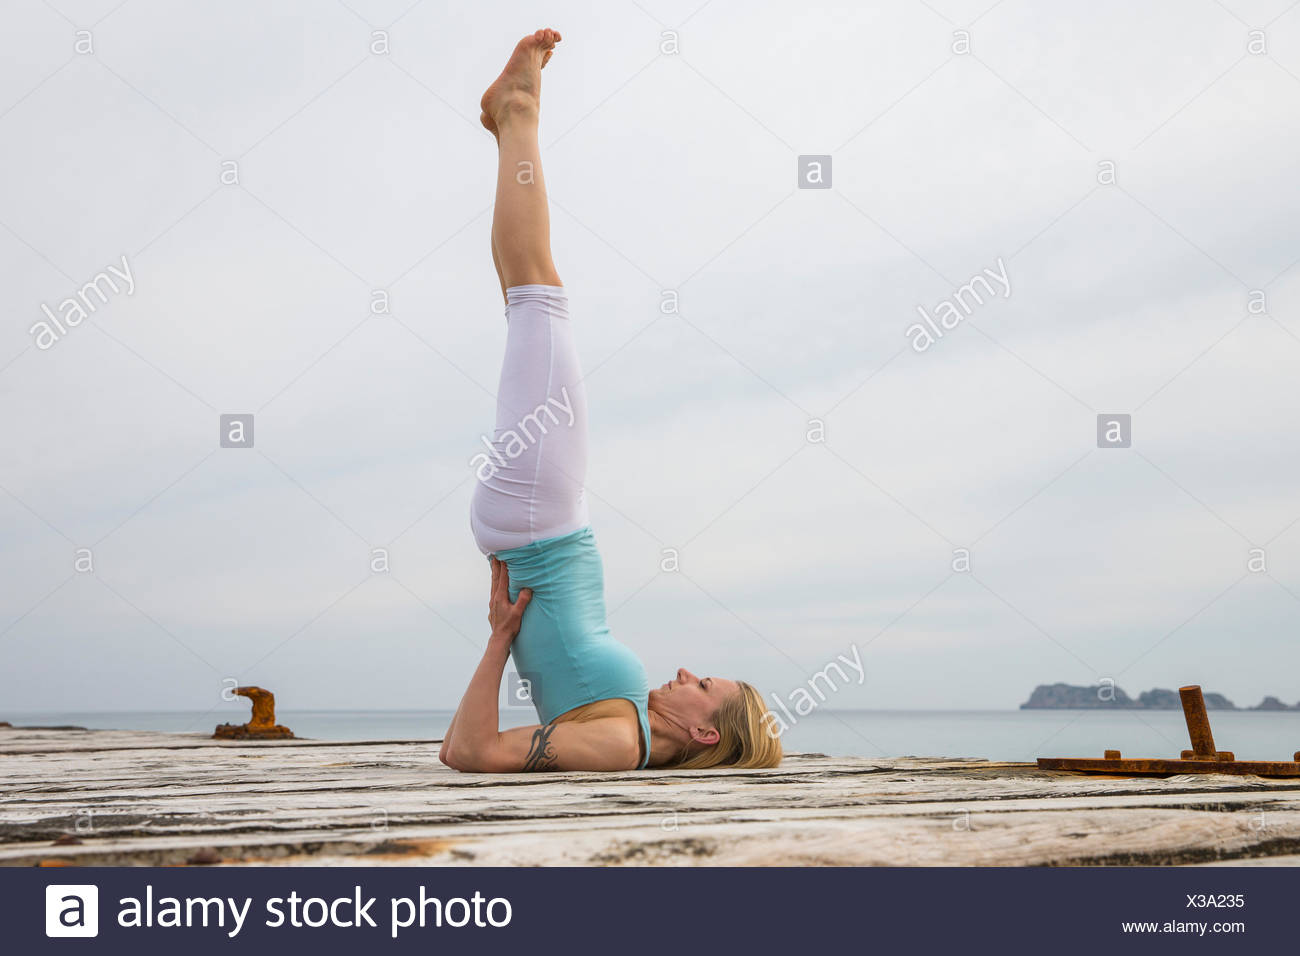 Mid adult woman with legs raised practicing yoga on wooden sea pier - Stock Image